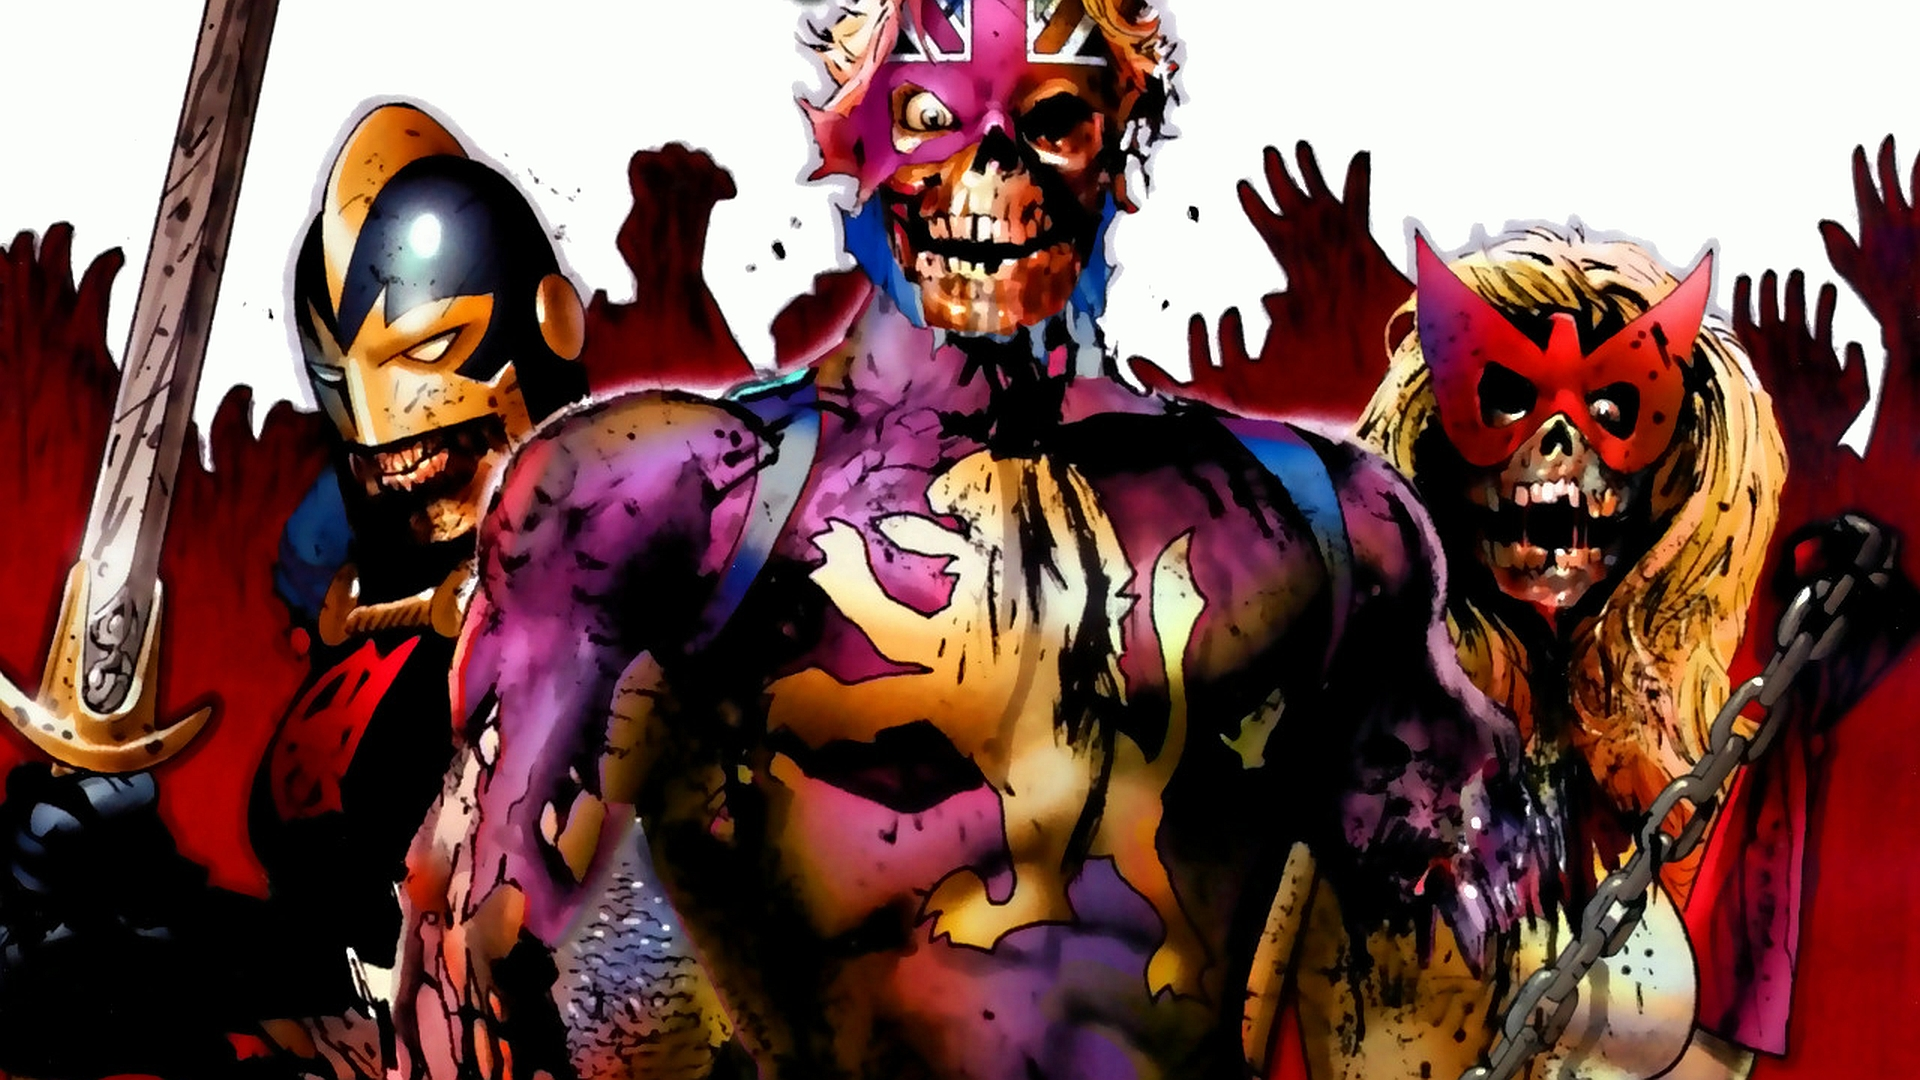 12 Marvel Zombies HD Wallpapers Backgrounds 1920x1080